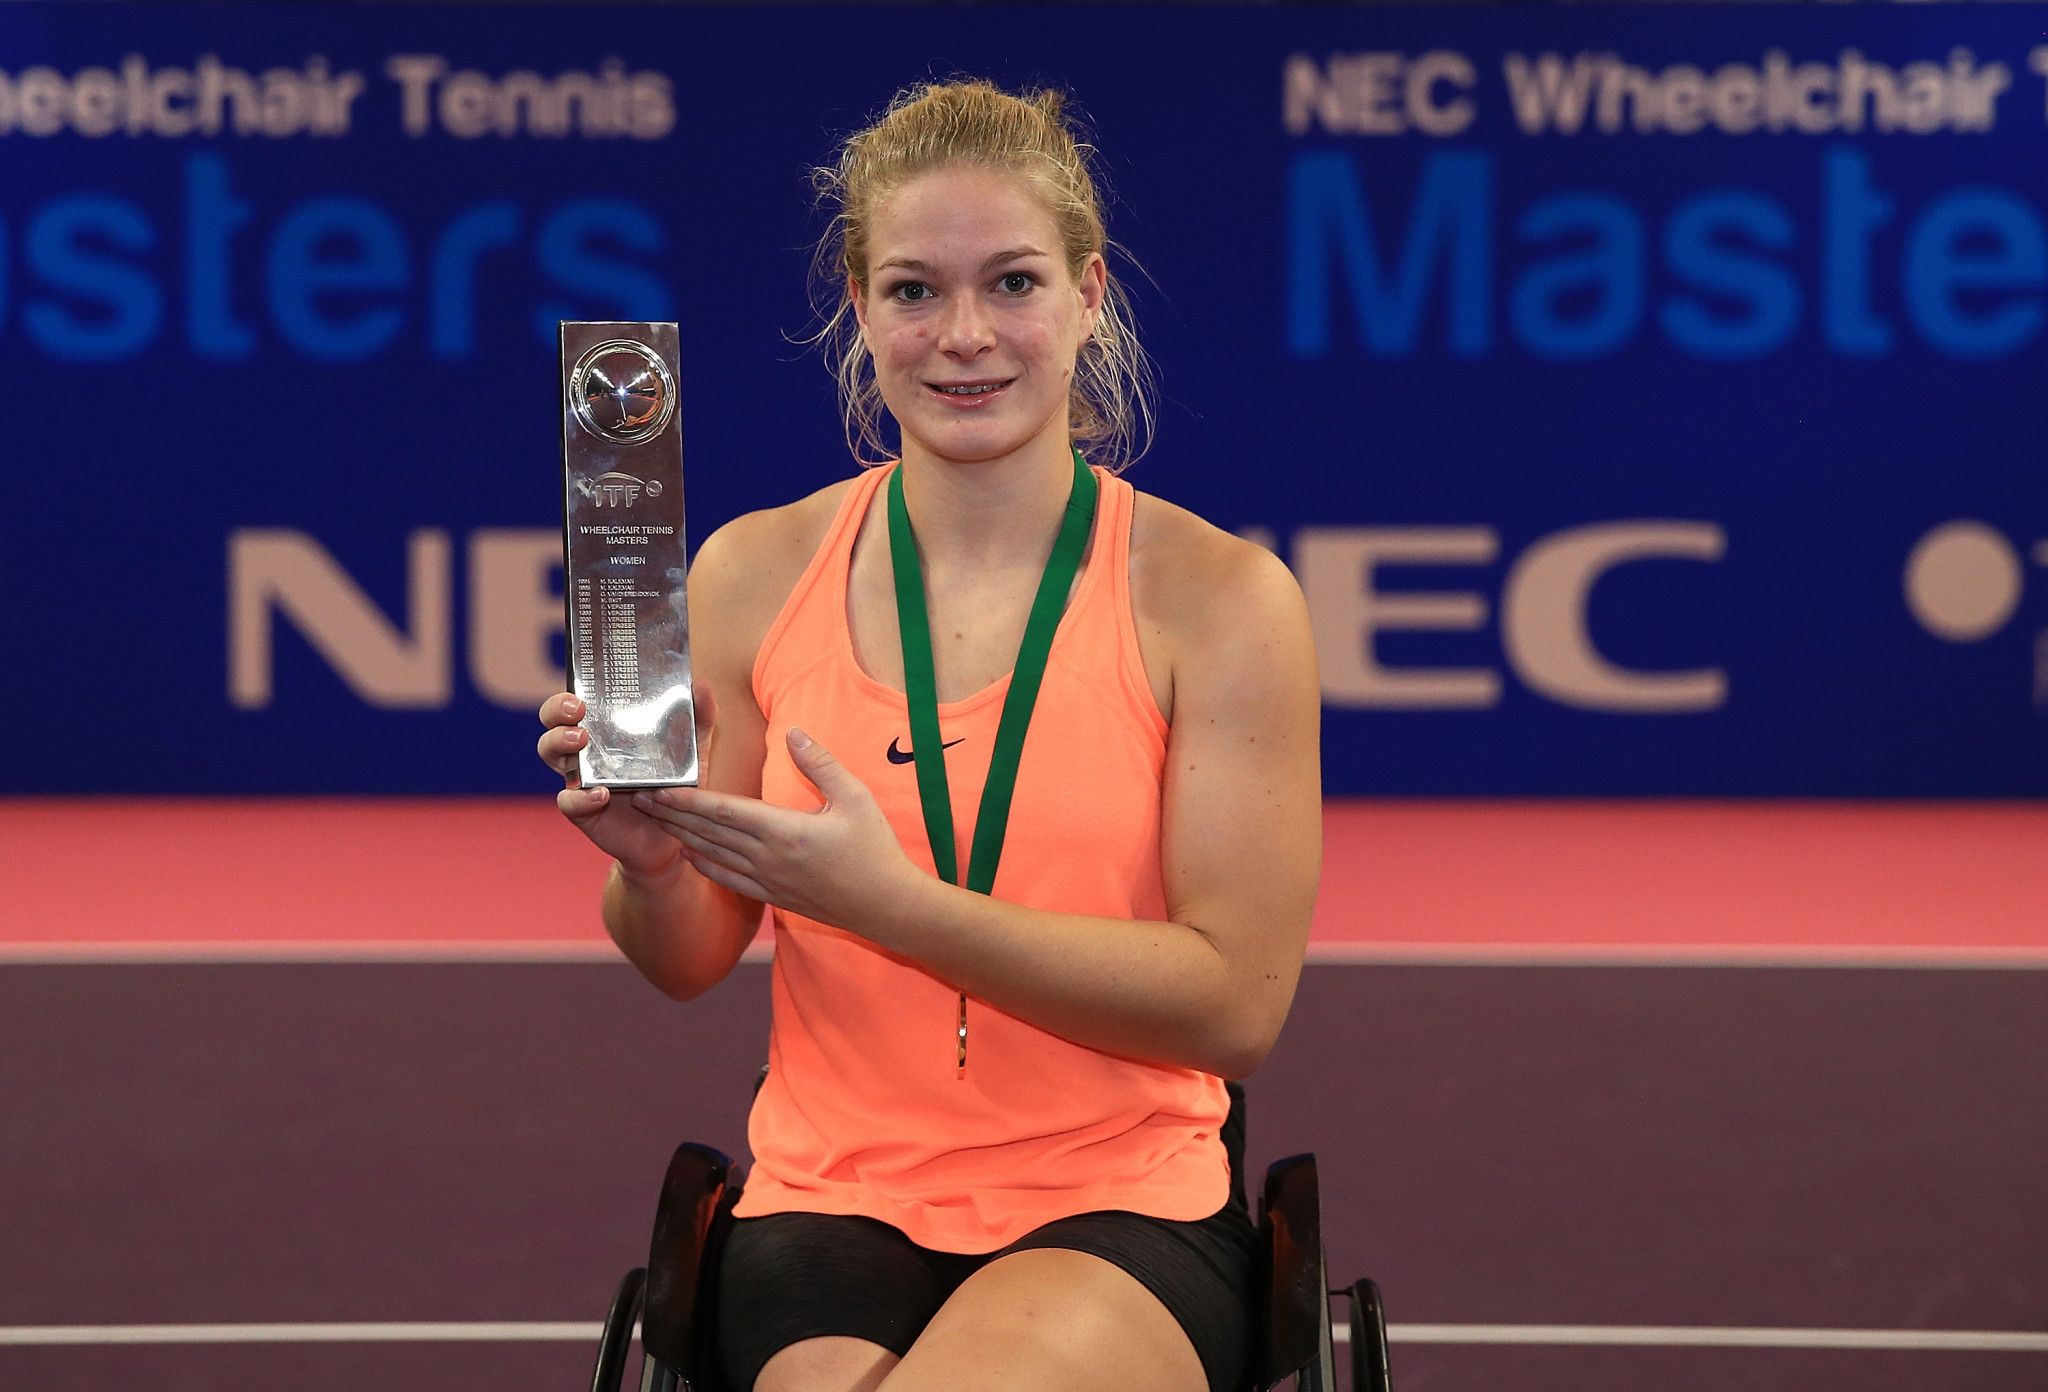 Dutch wheelchair tennis player Diede de Groot has been nominated for the IPC December Allianz Athlete of the Month Award after winning the year-end NEC Masters having also won three Grand Slam singles titles in 2018 ©Getty Images